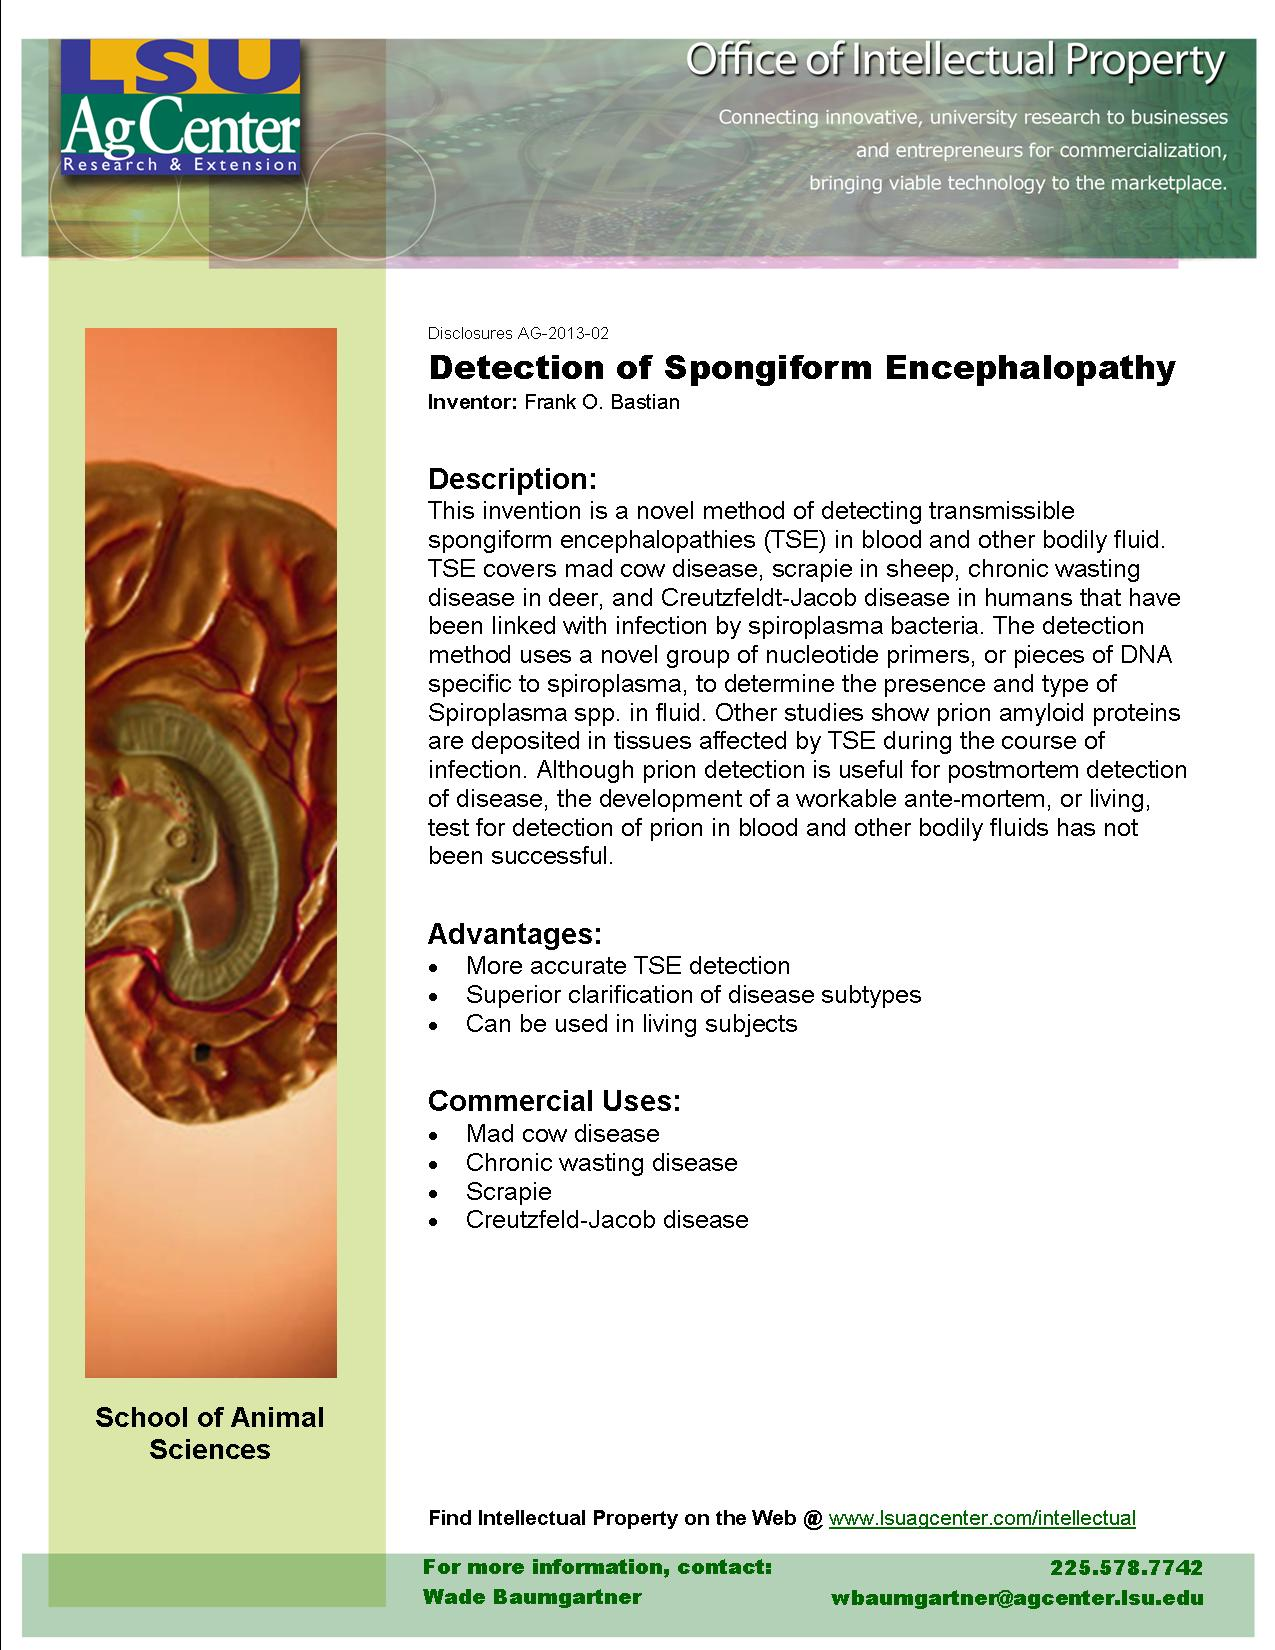 Detection of Spongiform Encephalopathy